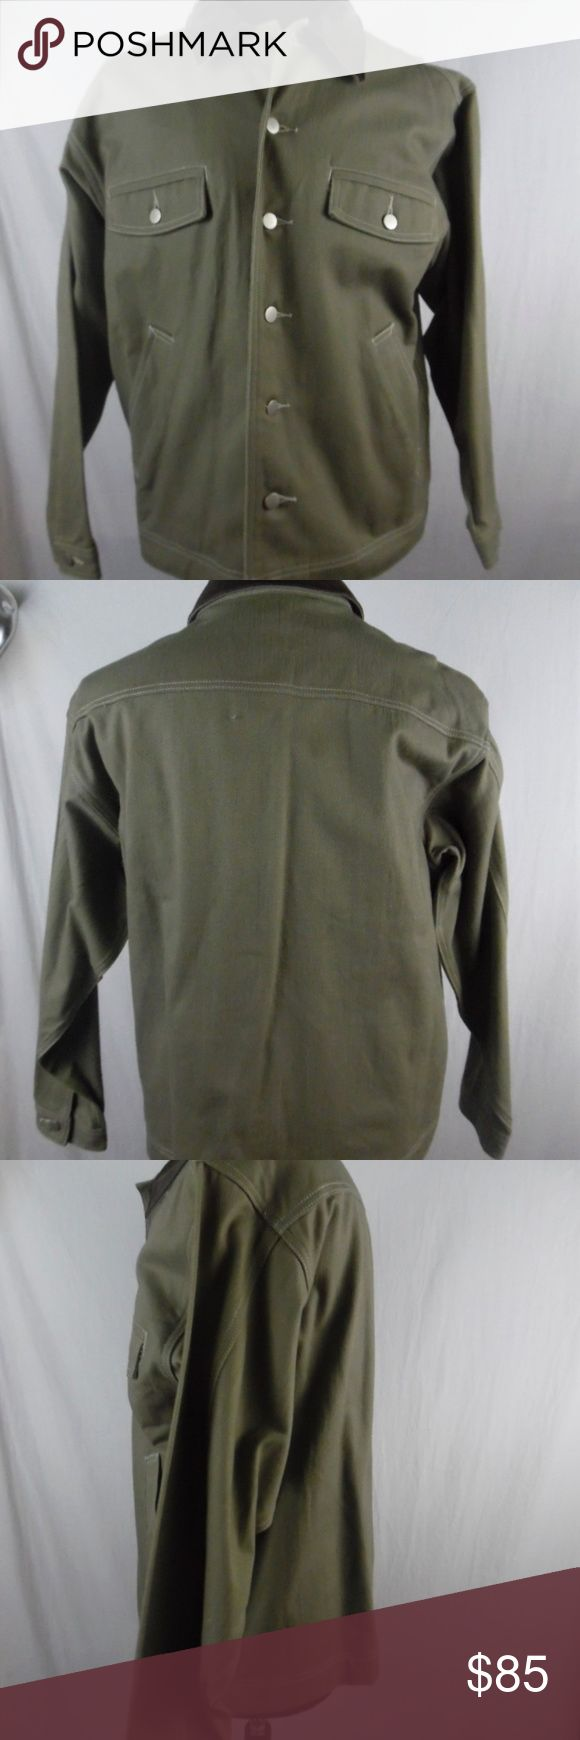 Vintage MARLBORO mens green button jean jacket M Vintage, MARLBORO GEAR 99, like new with tags still, this is a very well heavy duty made jacket, with a leather collar, with lot of pockets. 100% Cotton Color Army Green  Arm  pit to Arm pit 23 inch Sleeve 23 inch Shoulders 21 1/2 inch Length 27 1/2 inch MARLBORO Jackets & Coats Lightweight & Shirt Jackets